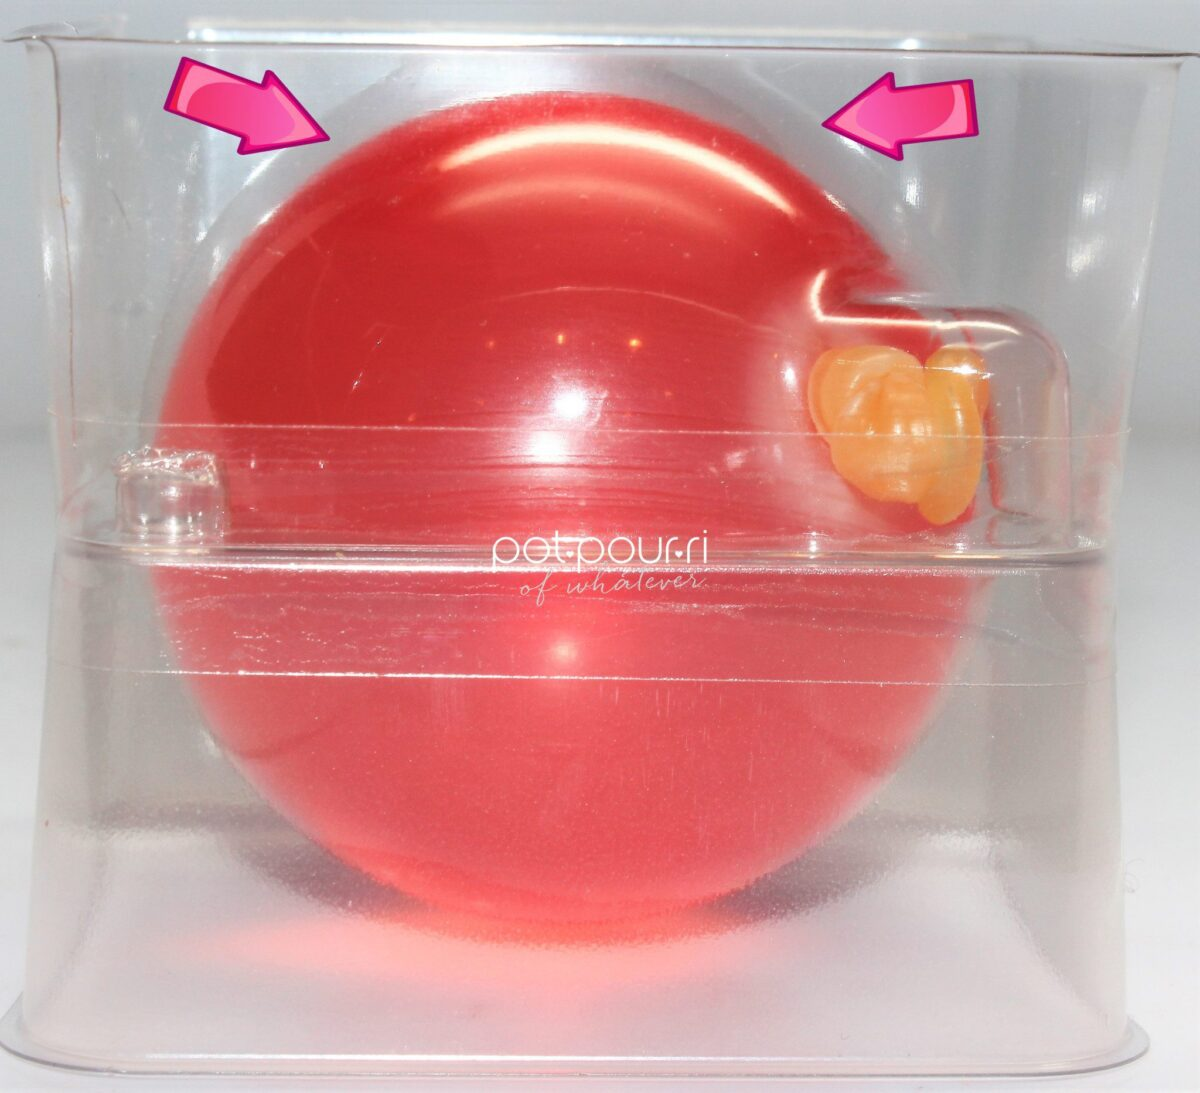 Jelly Ball is encased in a latex balloon seal